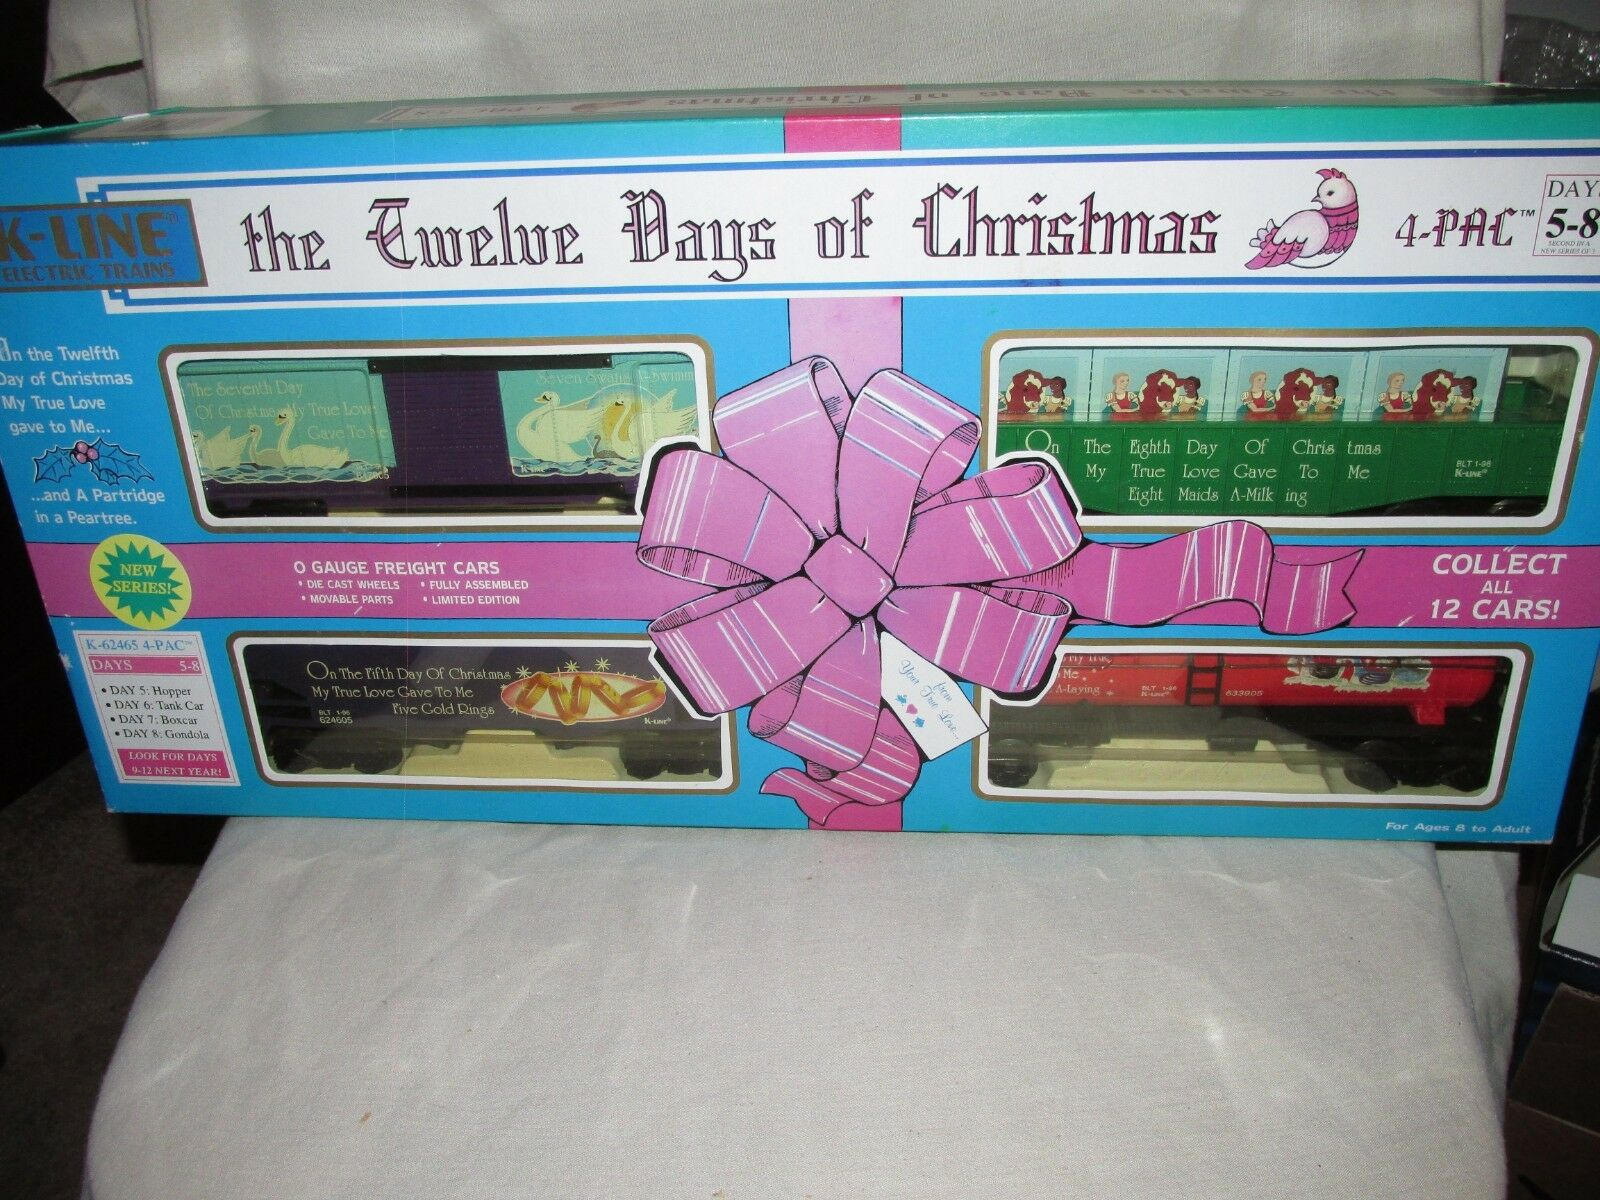 K-Line O/O27 Gauge 1996 12 Days Of Christmas 4 Car Set. 5th,6th,7th & 8th Days